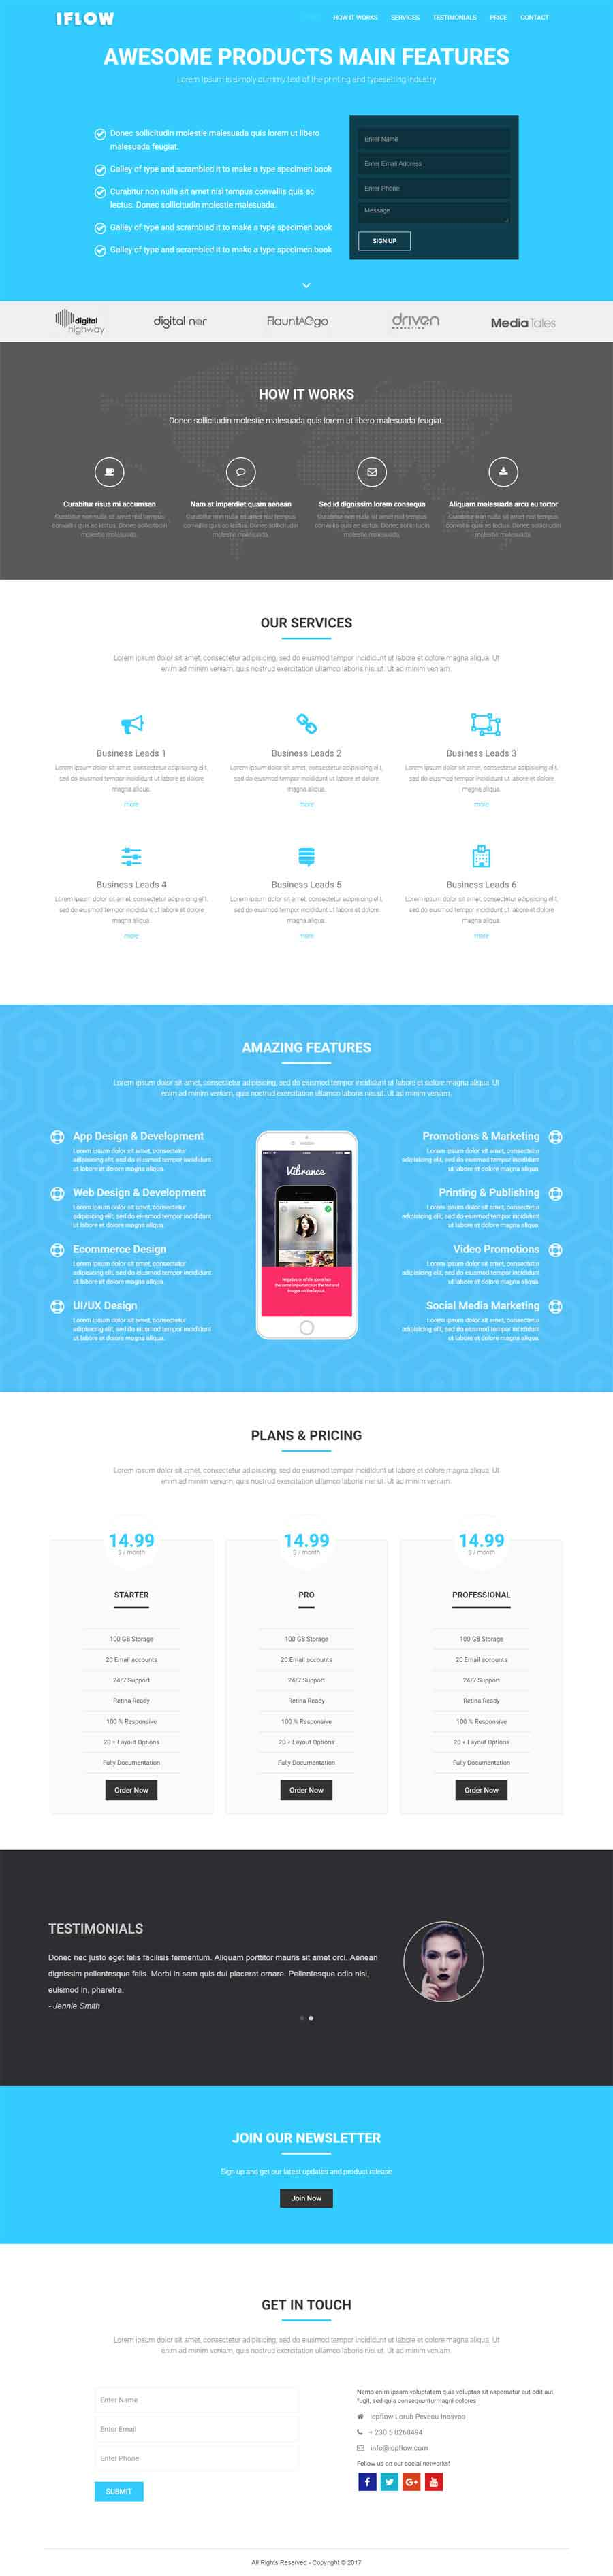 Iflow Responsive Free One Page Bootstrap Template